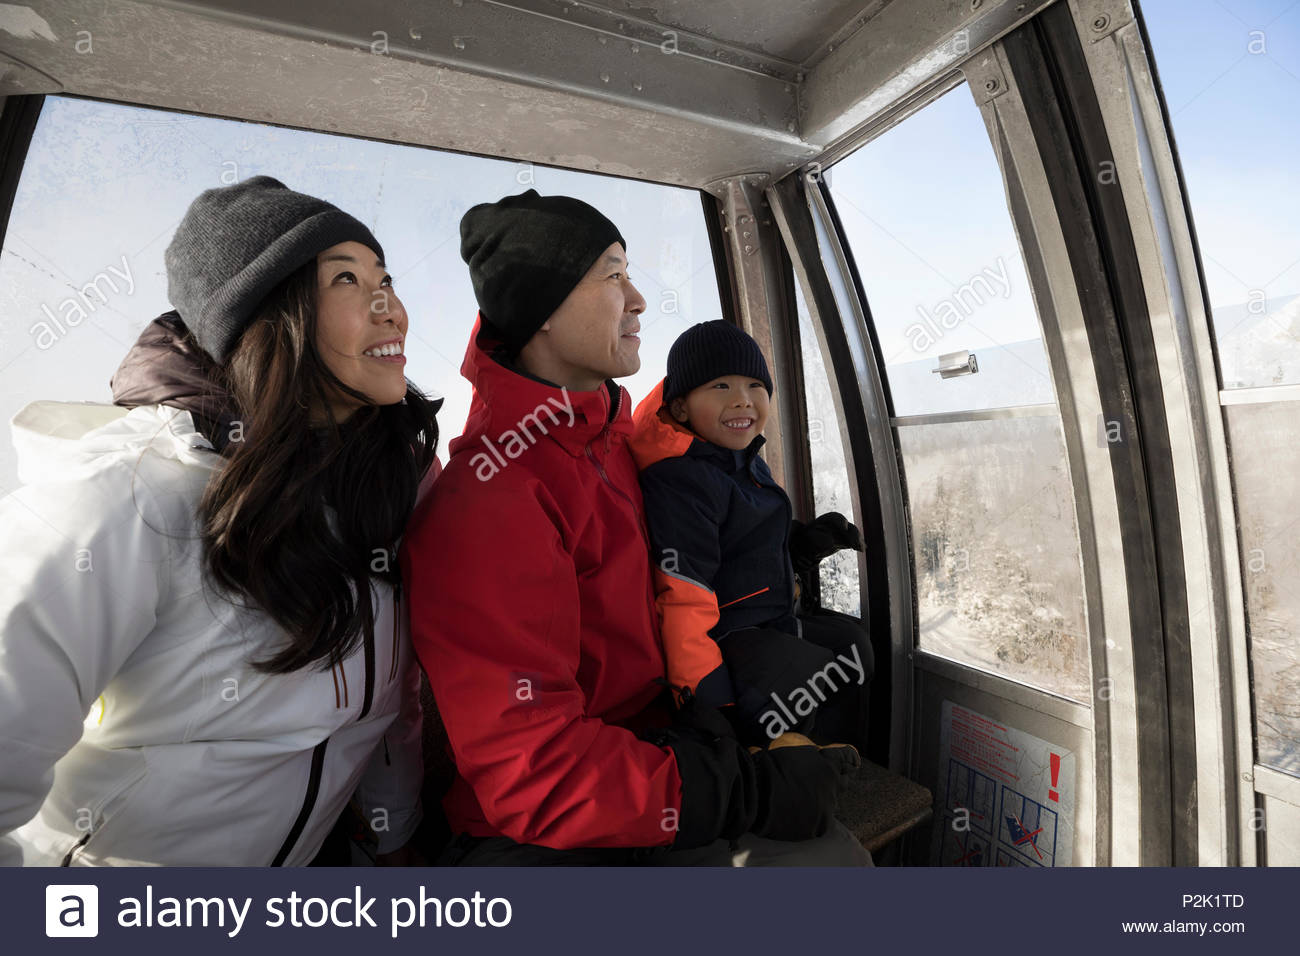 Family skiers riding gondola - Stock Image